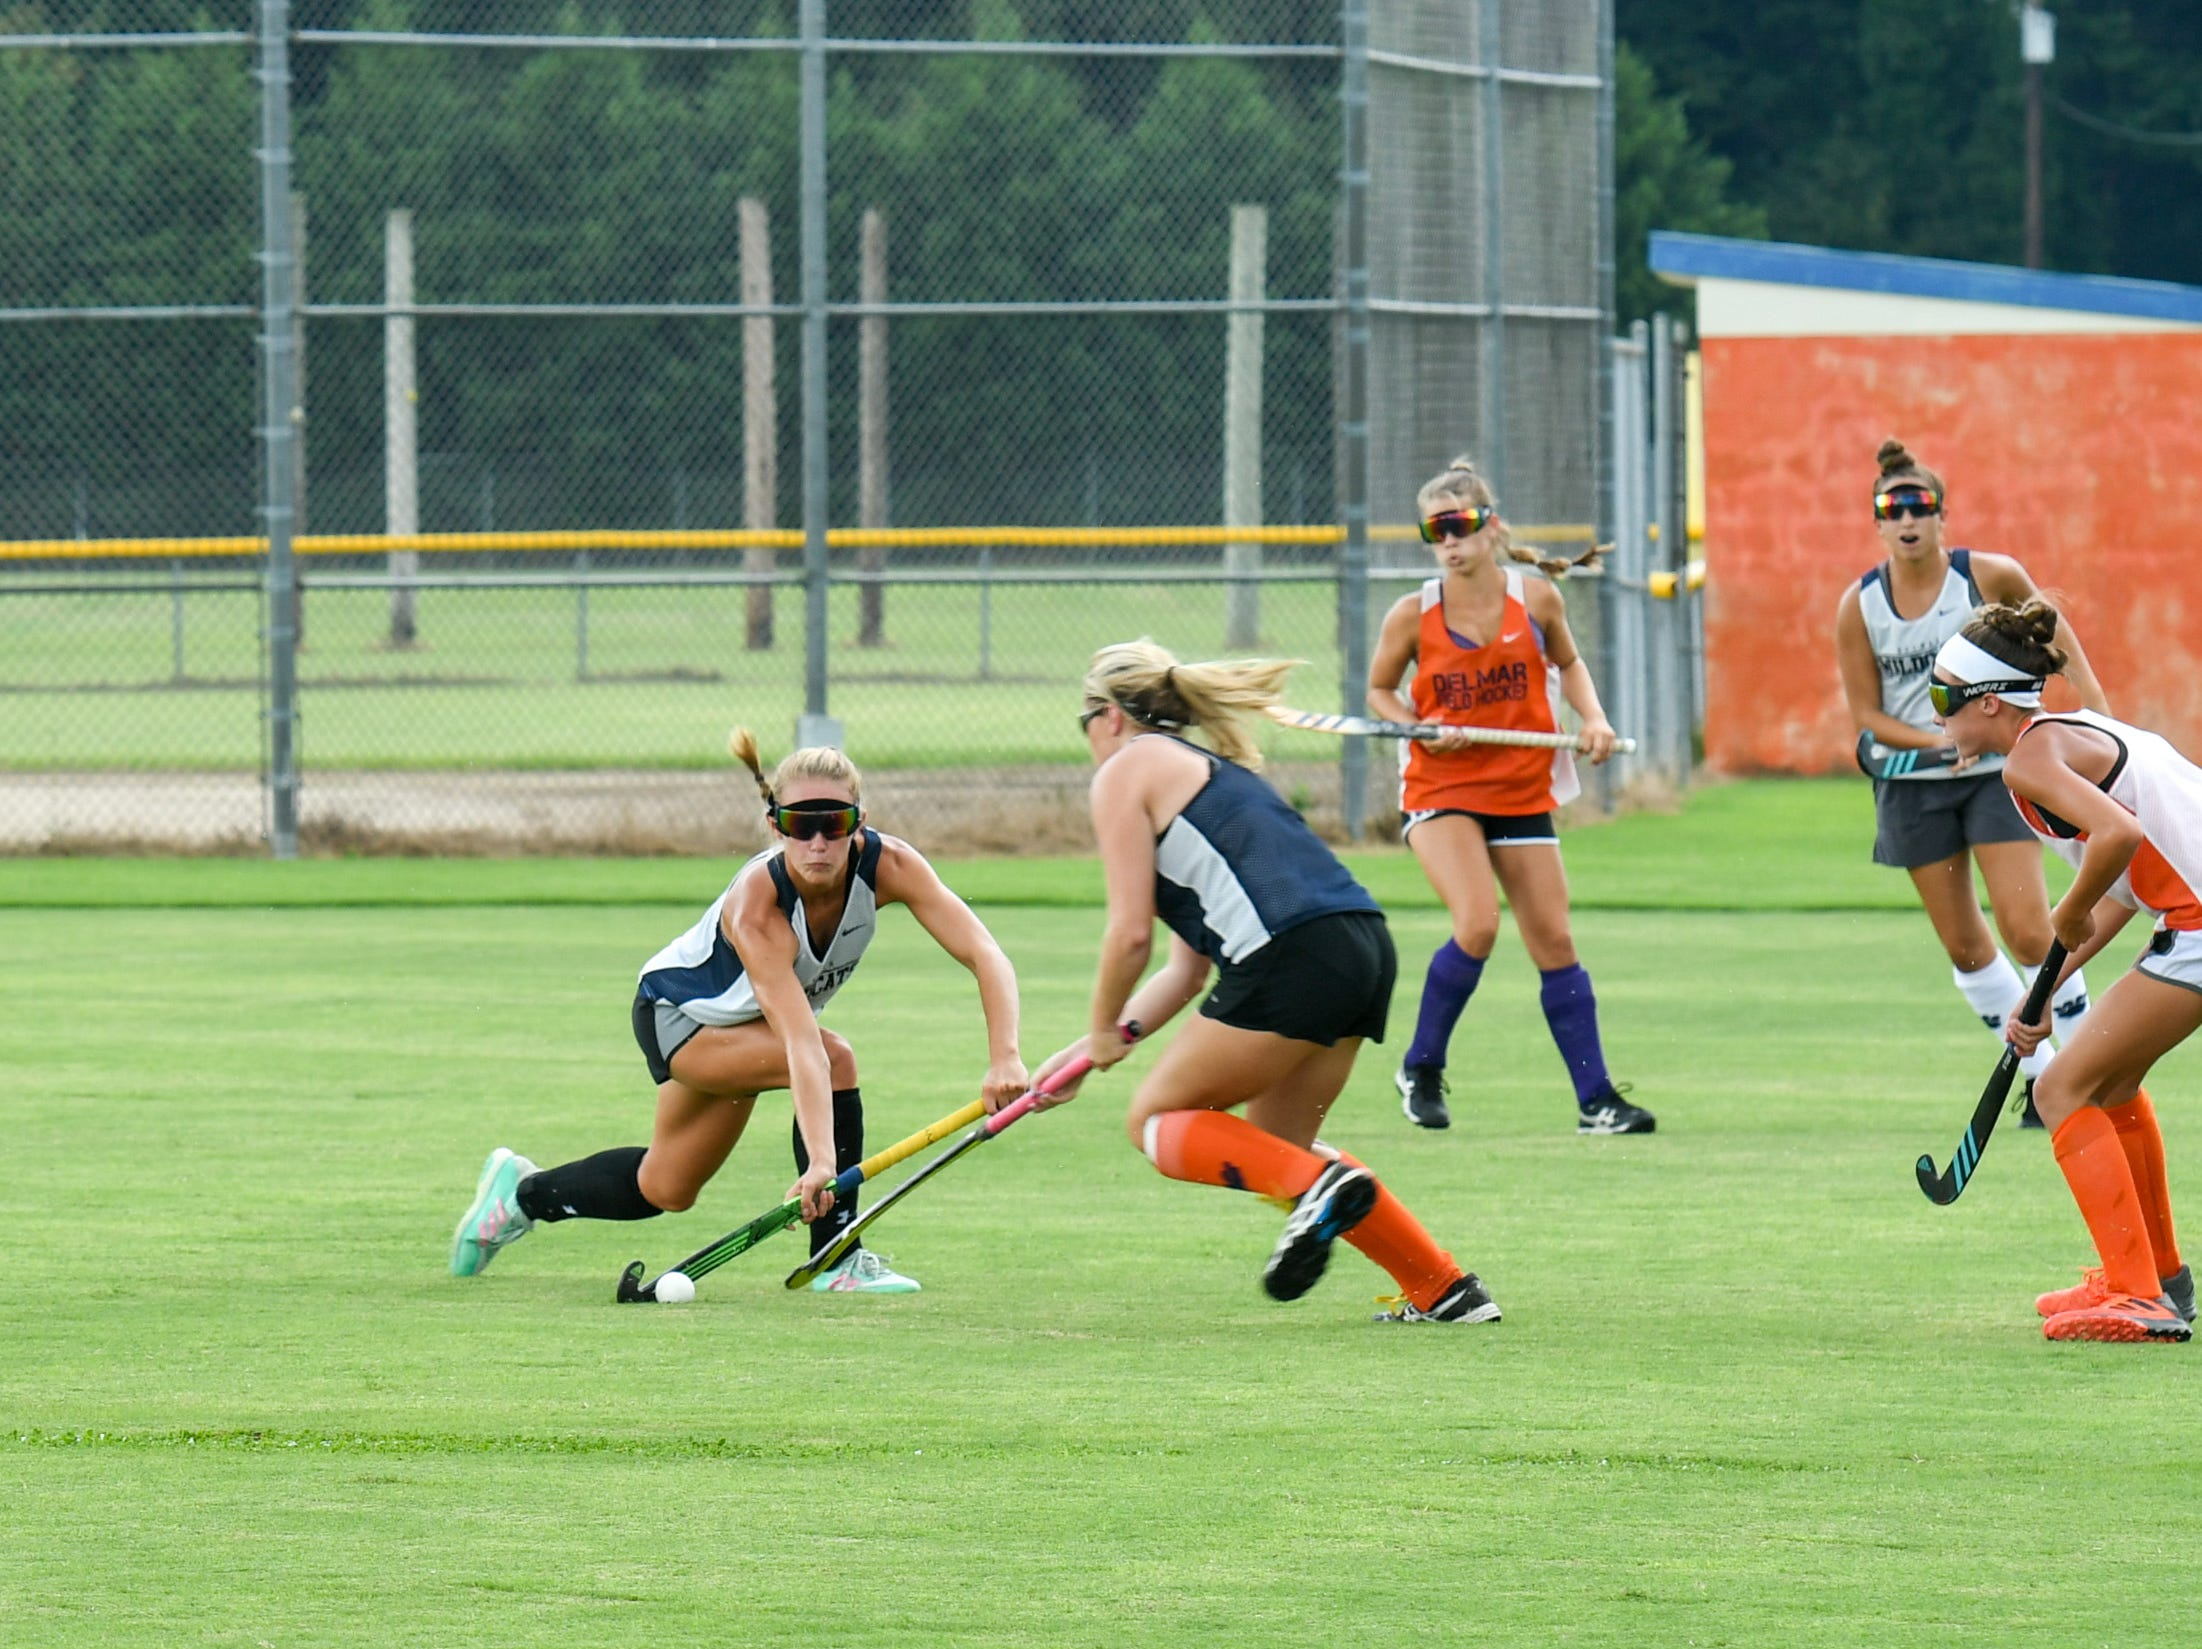 Senior Ashlyn Carr (left) fights for the ball during a scrimmage at Delmar field hockey practice on Wednesday, Sept. 5.